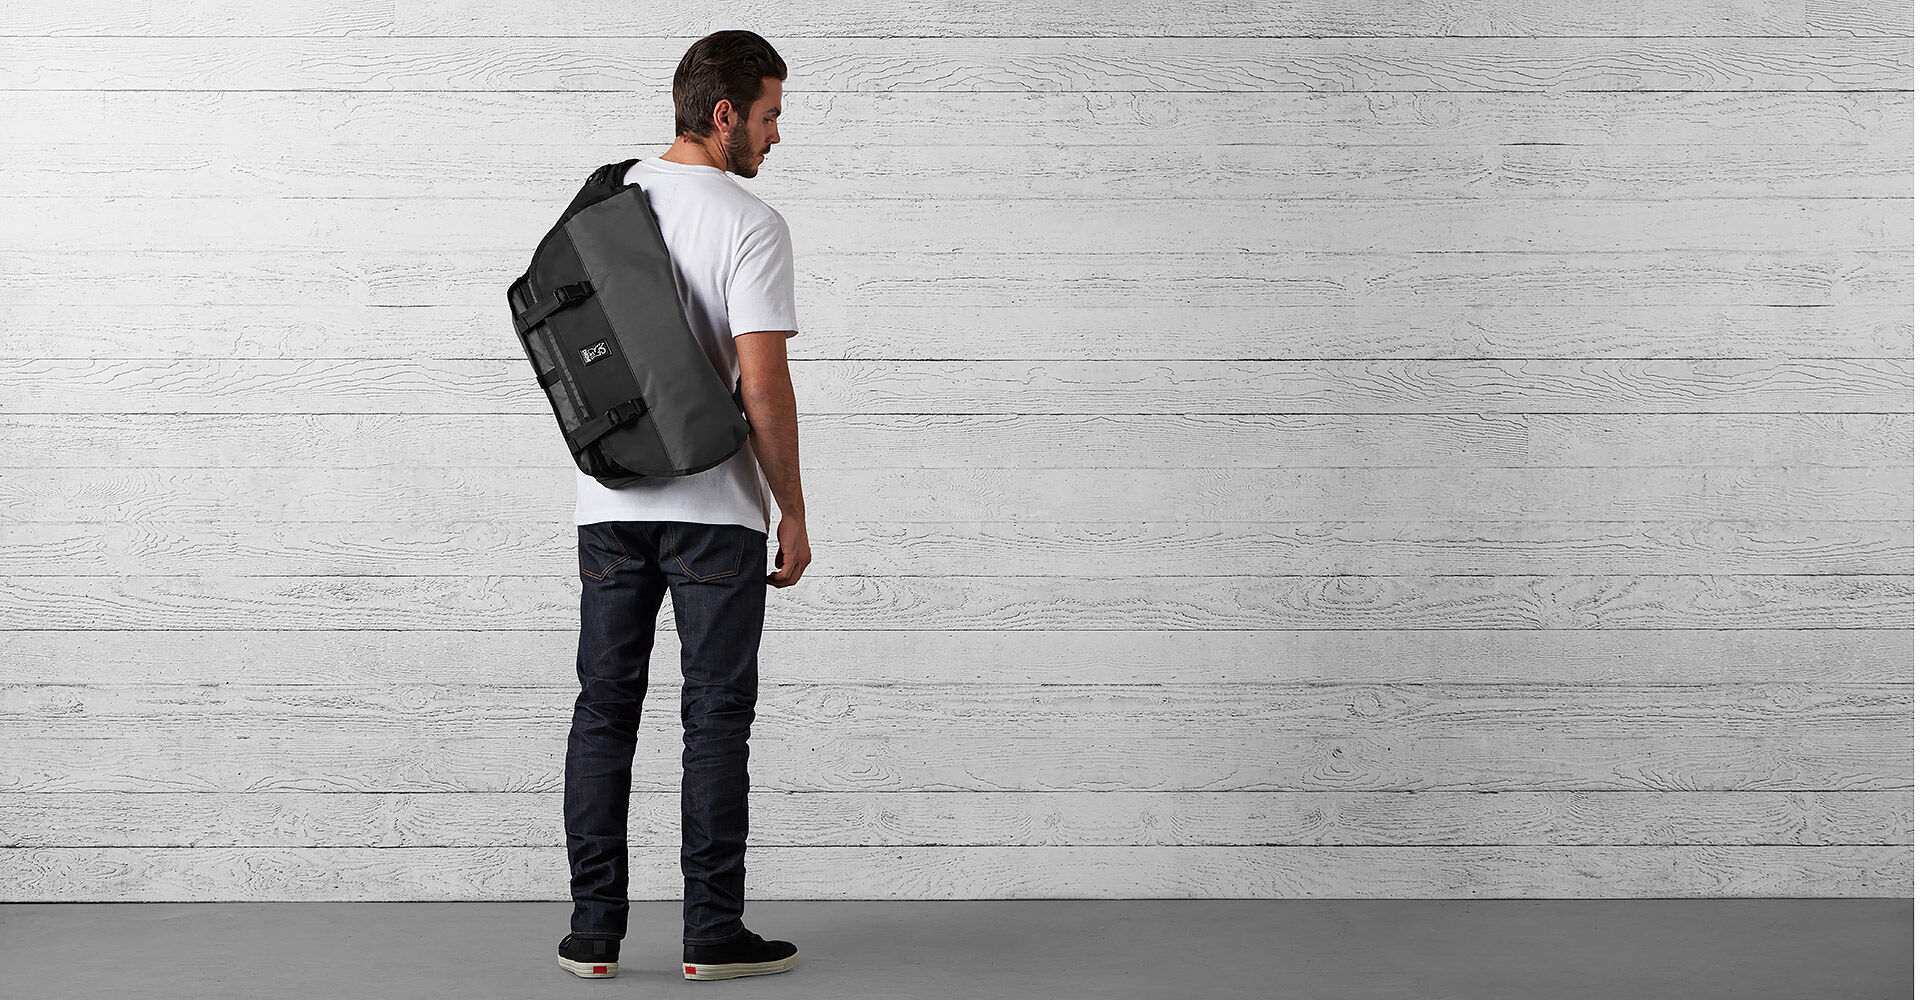 The Welterweight Citizen Messenger in Charcoal / Black - wide view.